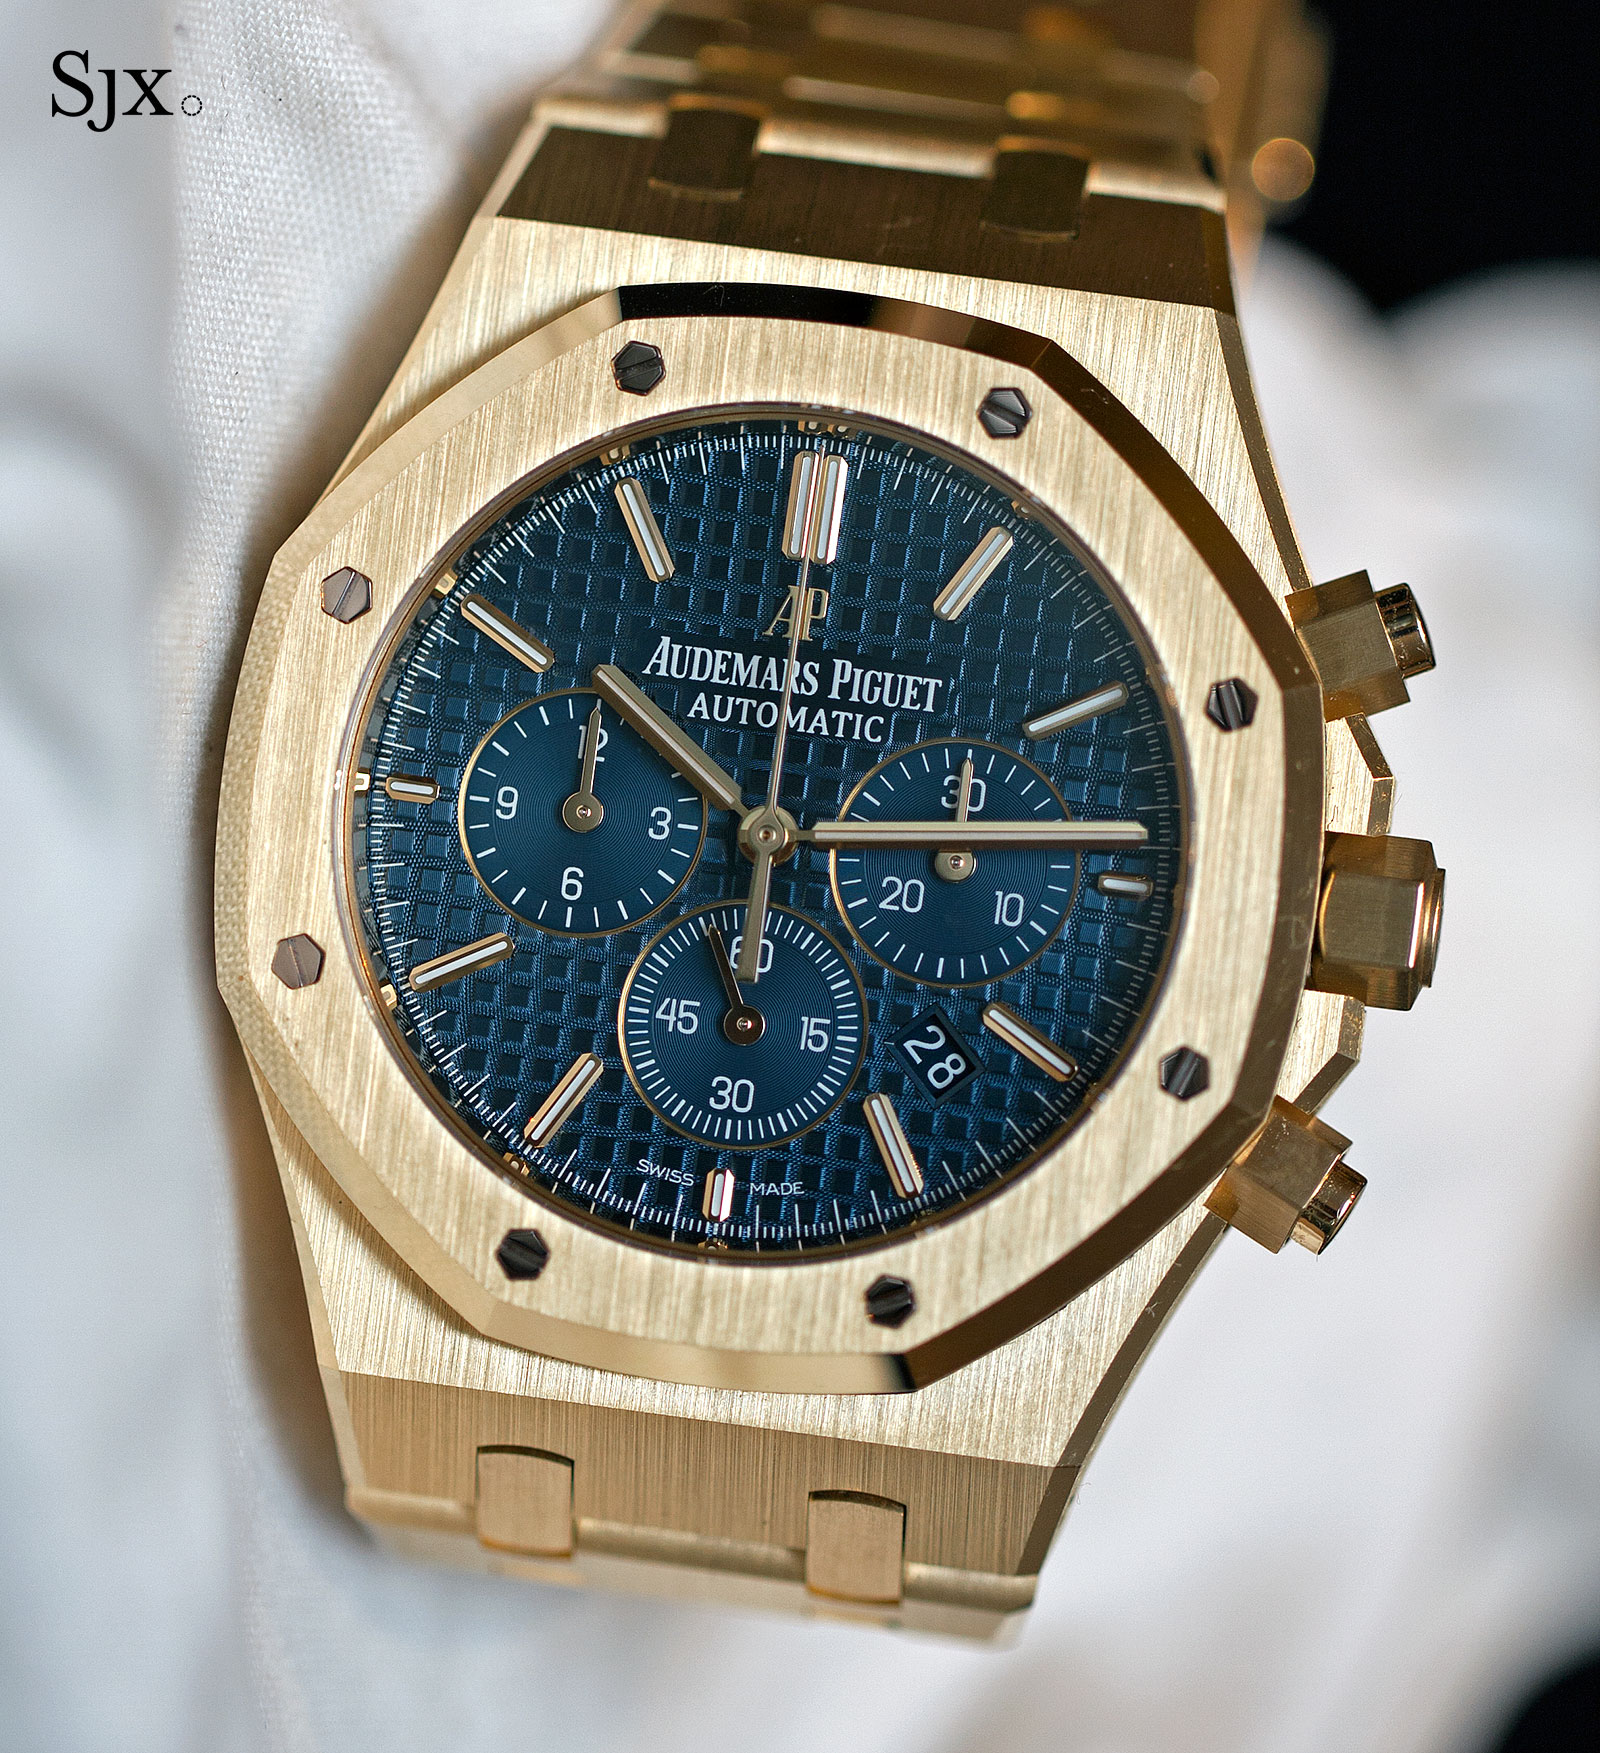 Audemars Piguet Royal Oak Chronograph 41 mm yellow gold 9